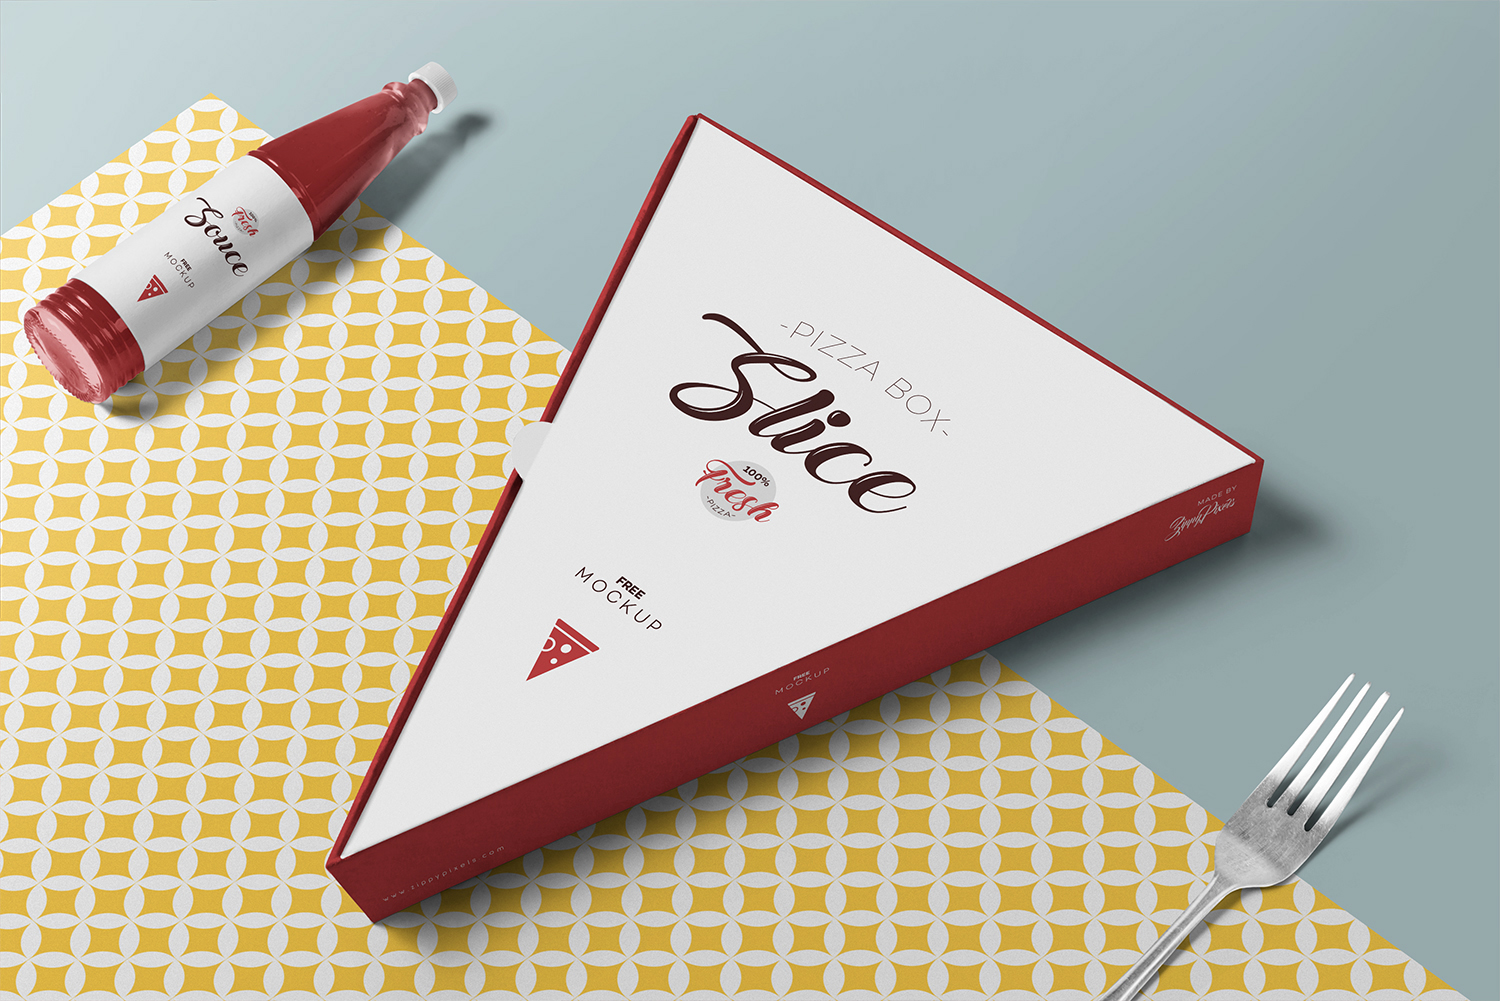 Free Pizza Slice Box Mockup